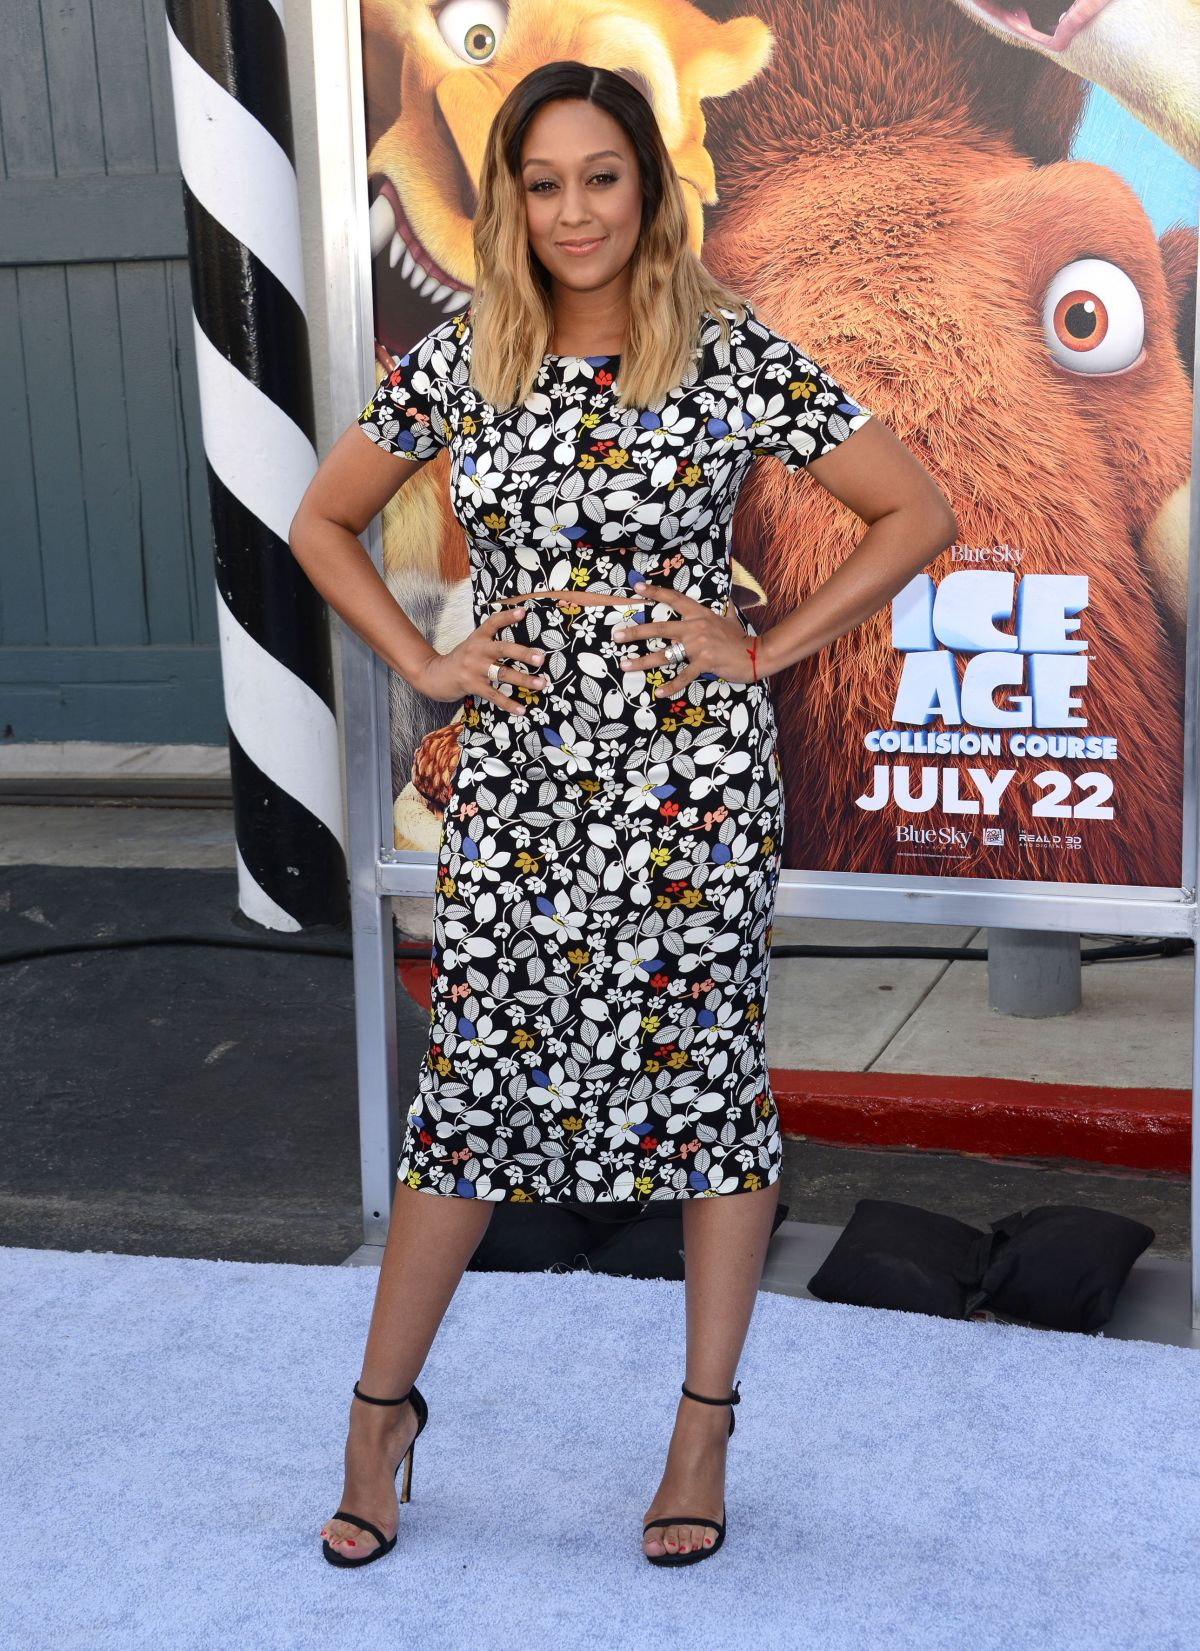 TIA MOWRY at 'Ice Age: Collision Course' Premieee in Los Angeles 07/16/2016